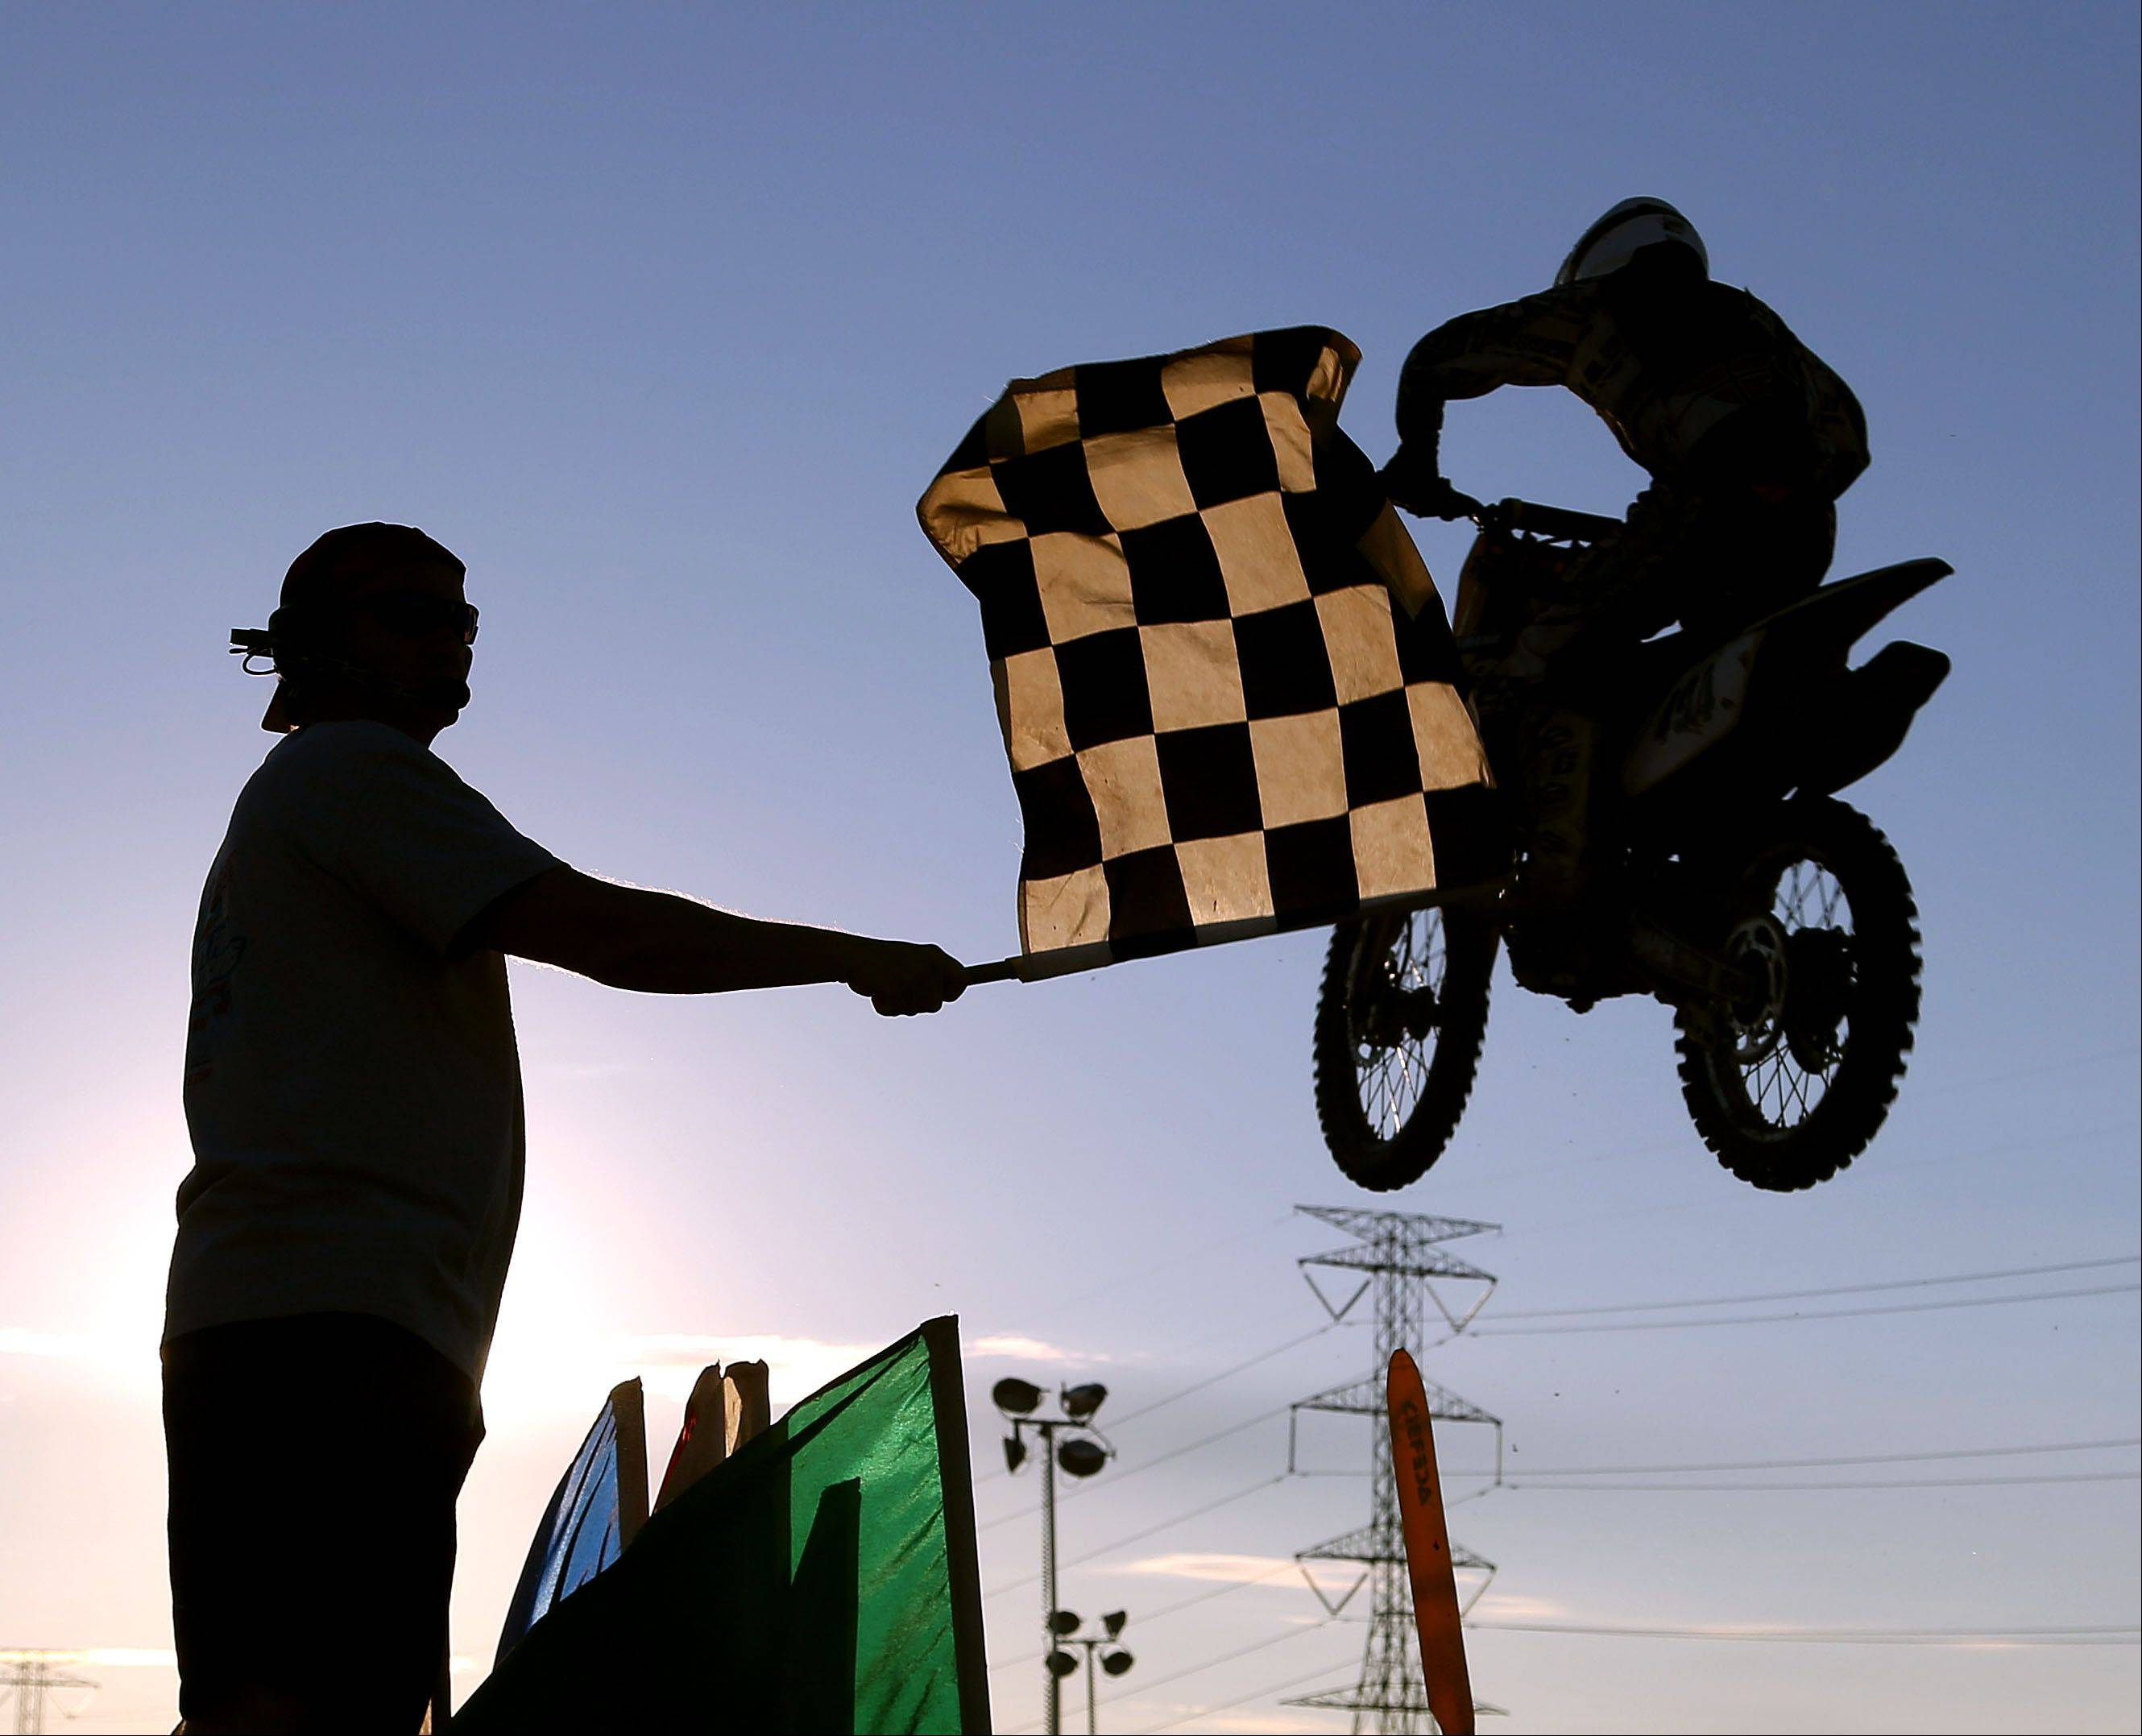 Motocross racers cross the finish line during opening day of the Lake County Fair in Grayslake Wednesday.